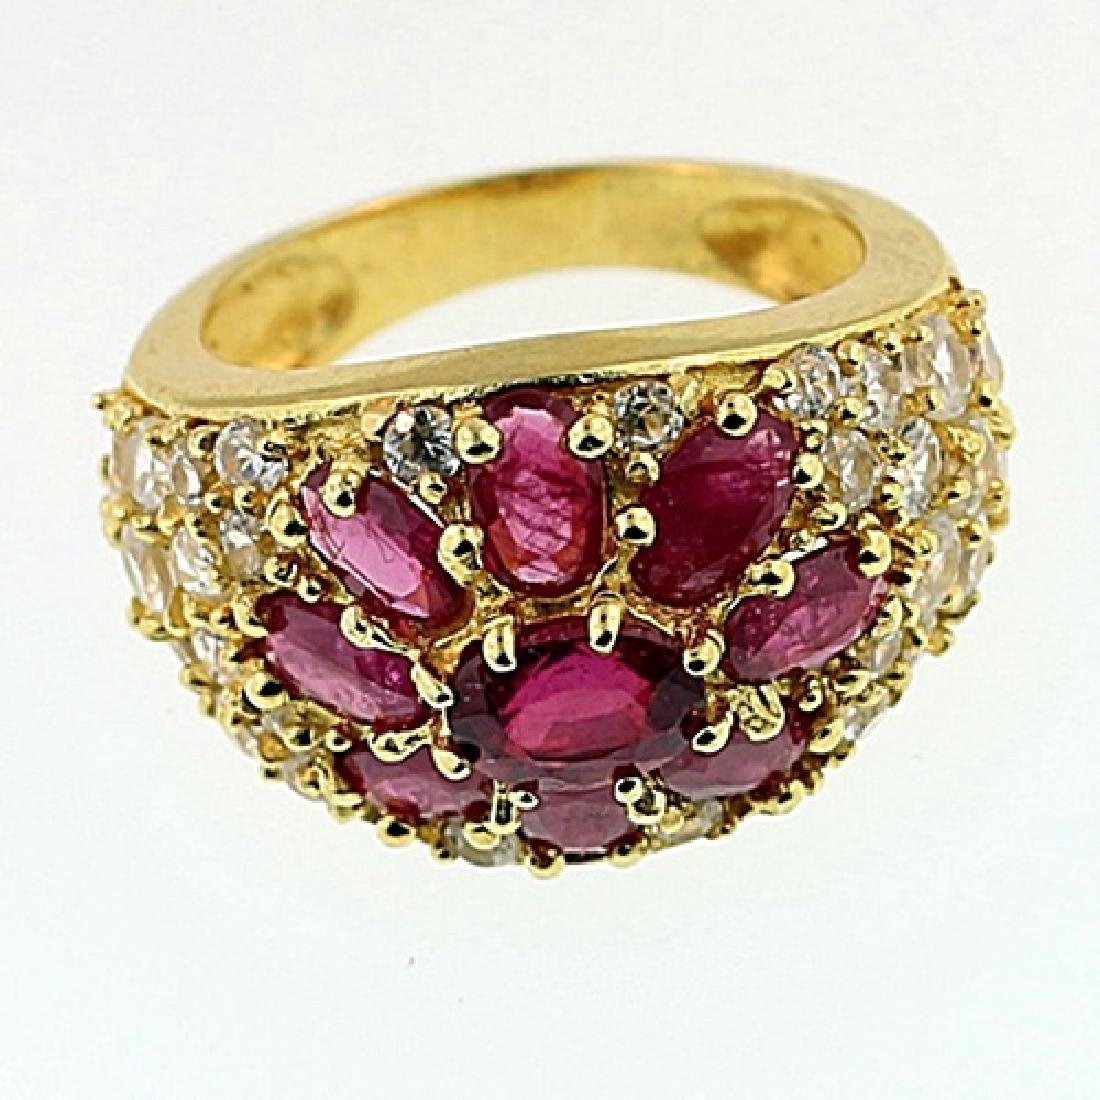 SILVER RING WITH RUBY AND WHITE TOPAZ